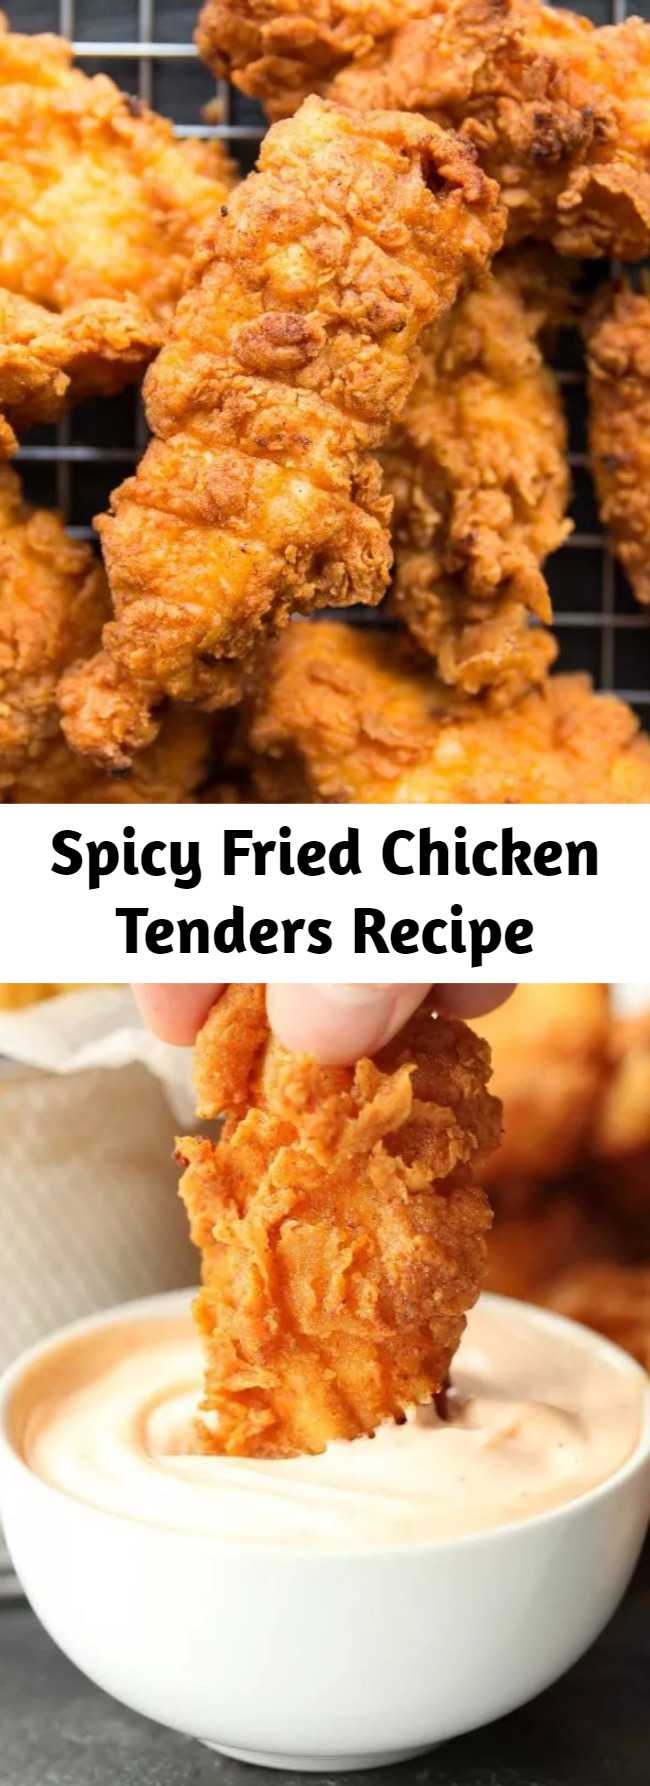 These Spicy Chicken Tenders are ridiculously delicious! Chicken strips marinated in buttermilk and hot sauce, then deep fried for extra crispiness. Need I say more?! #chicken #chickentenders #chickenstrips #spicychicken #friedchicken